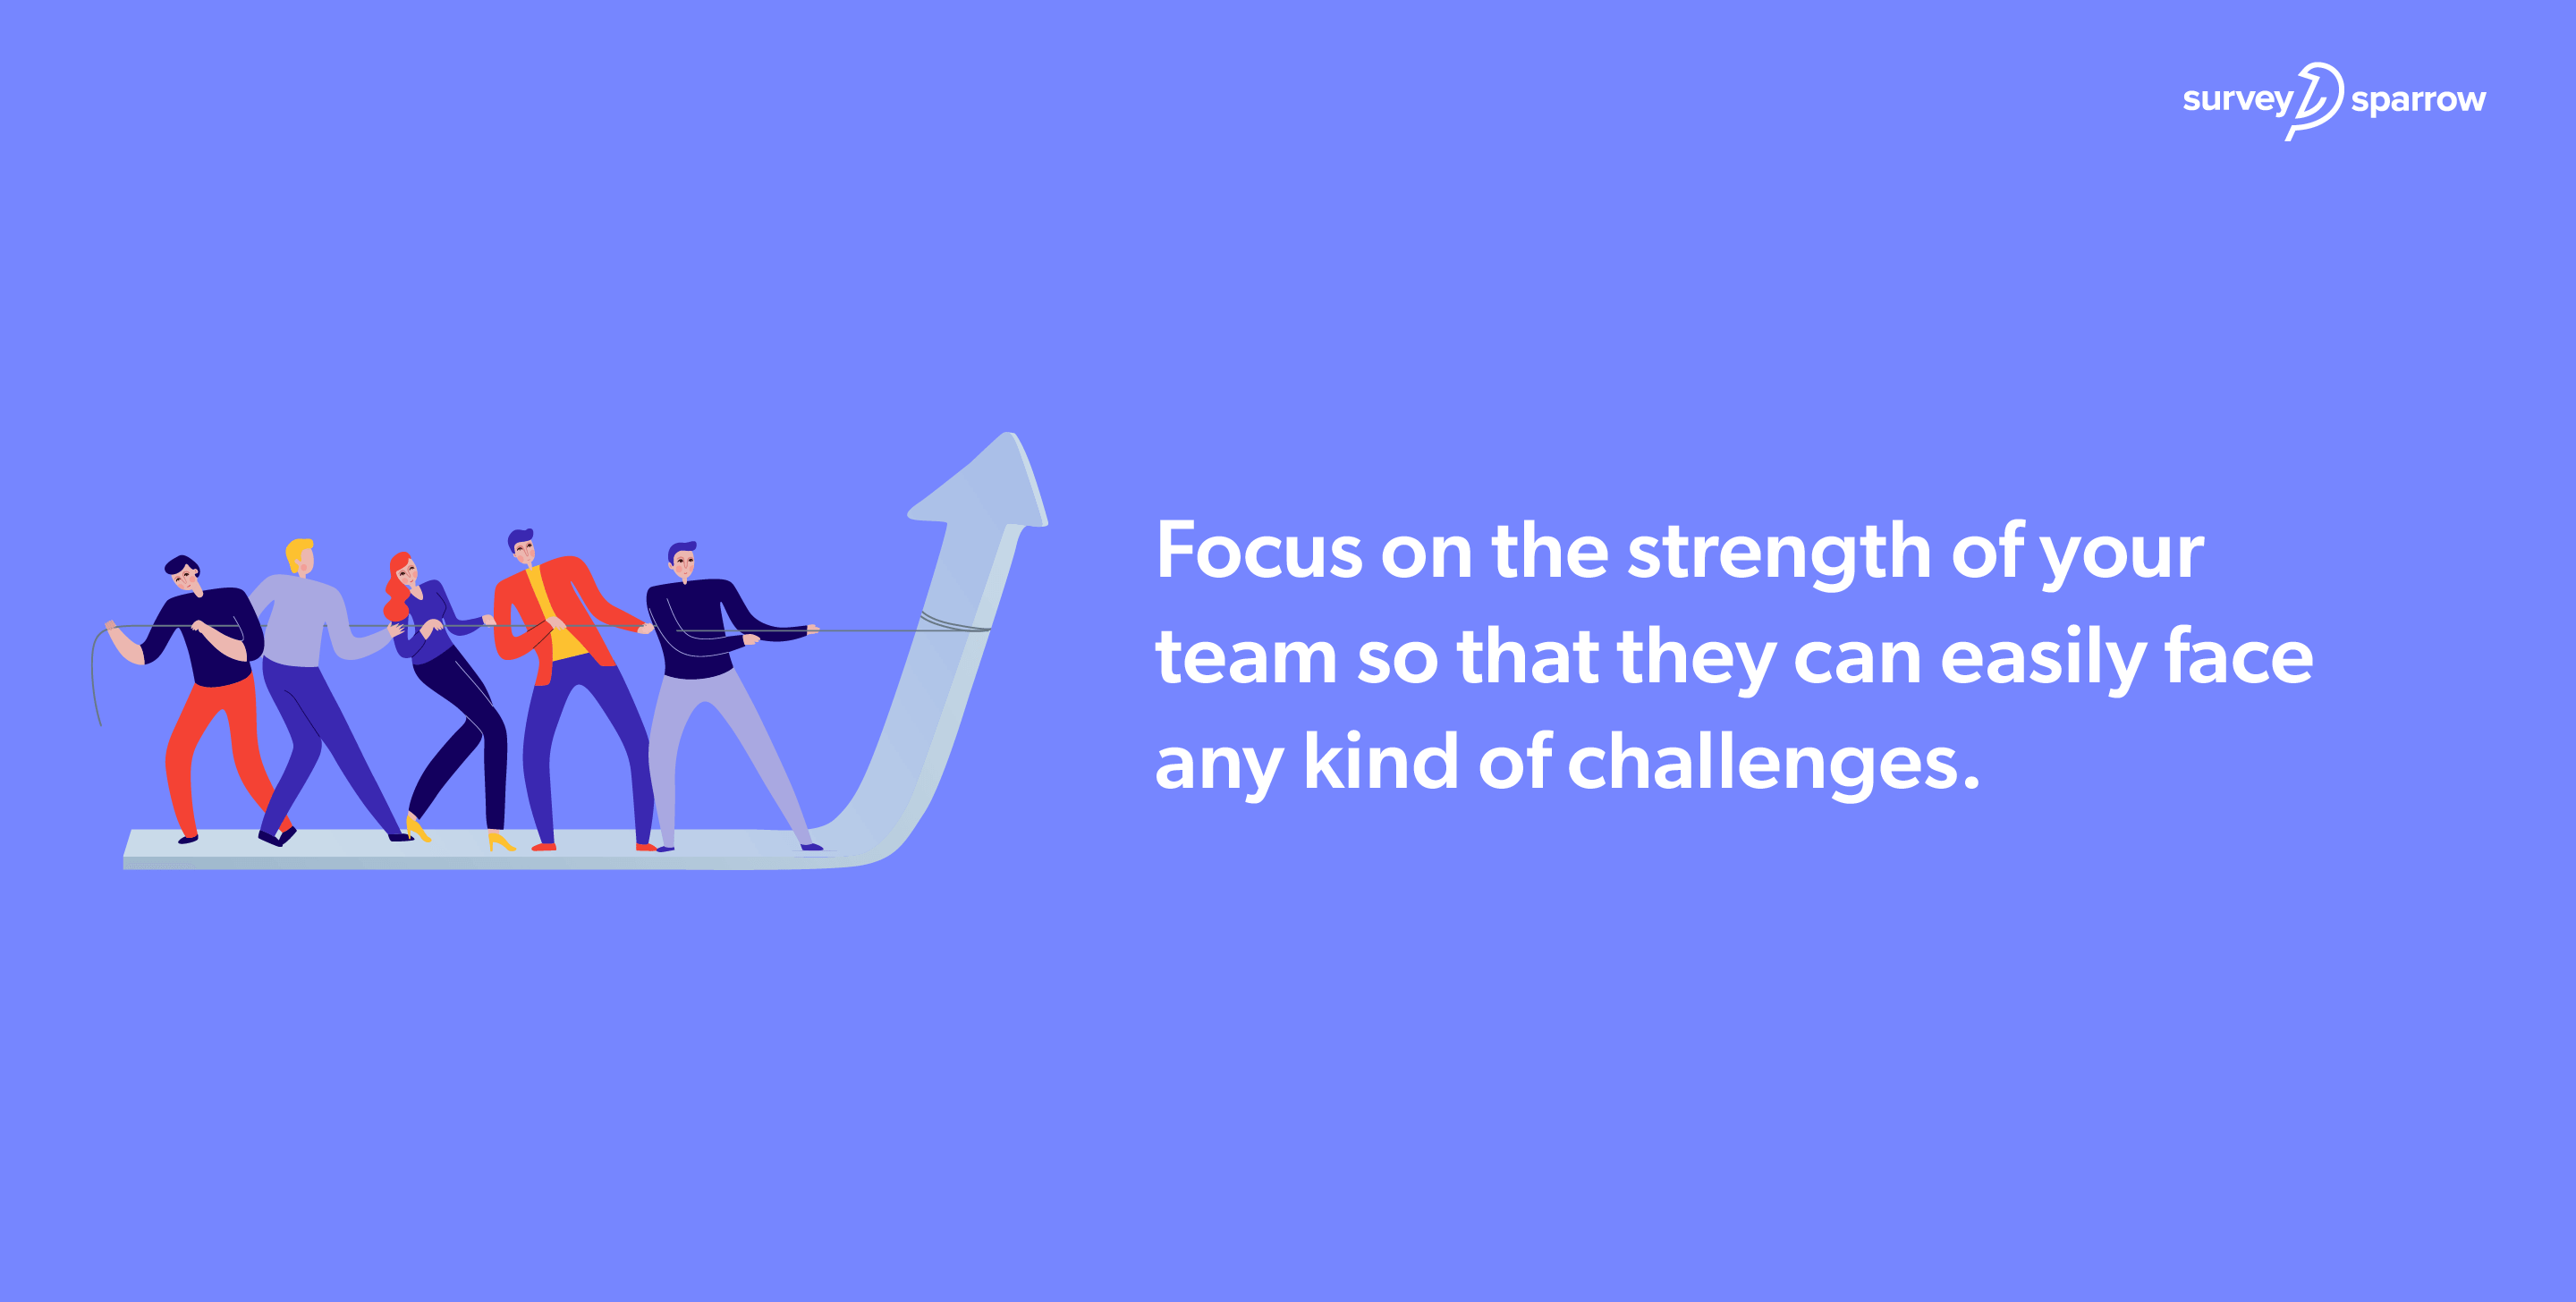 Focus on the strength of your remote customer service team so that they can face any kind of challenges.